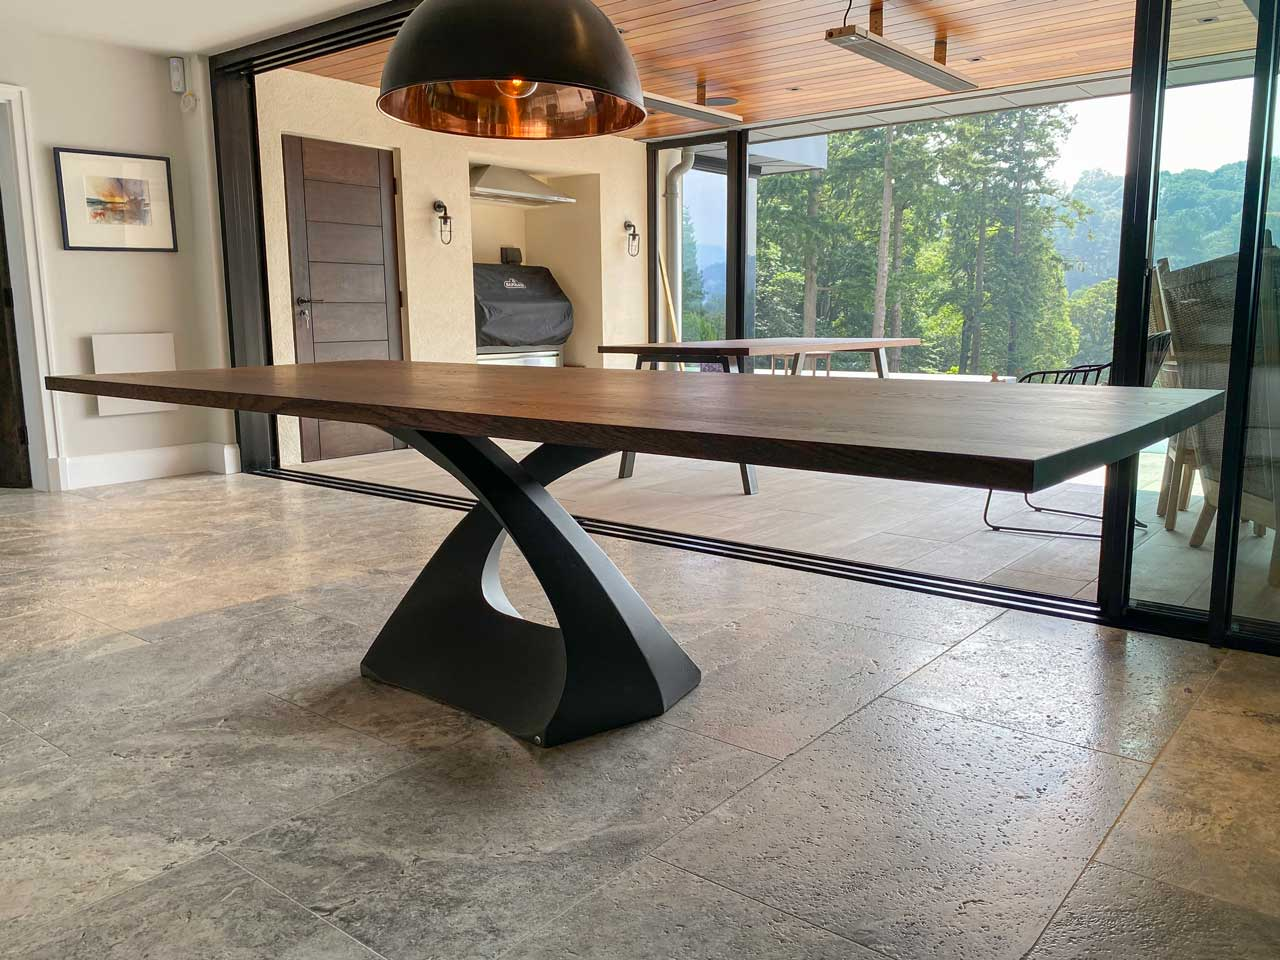 abacus-tables-project-989-2-pic-3